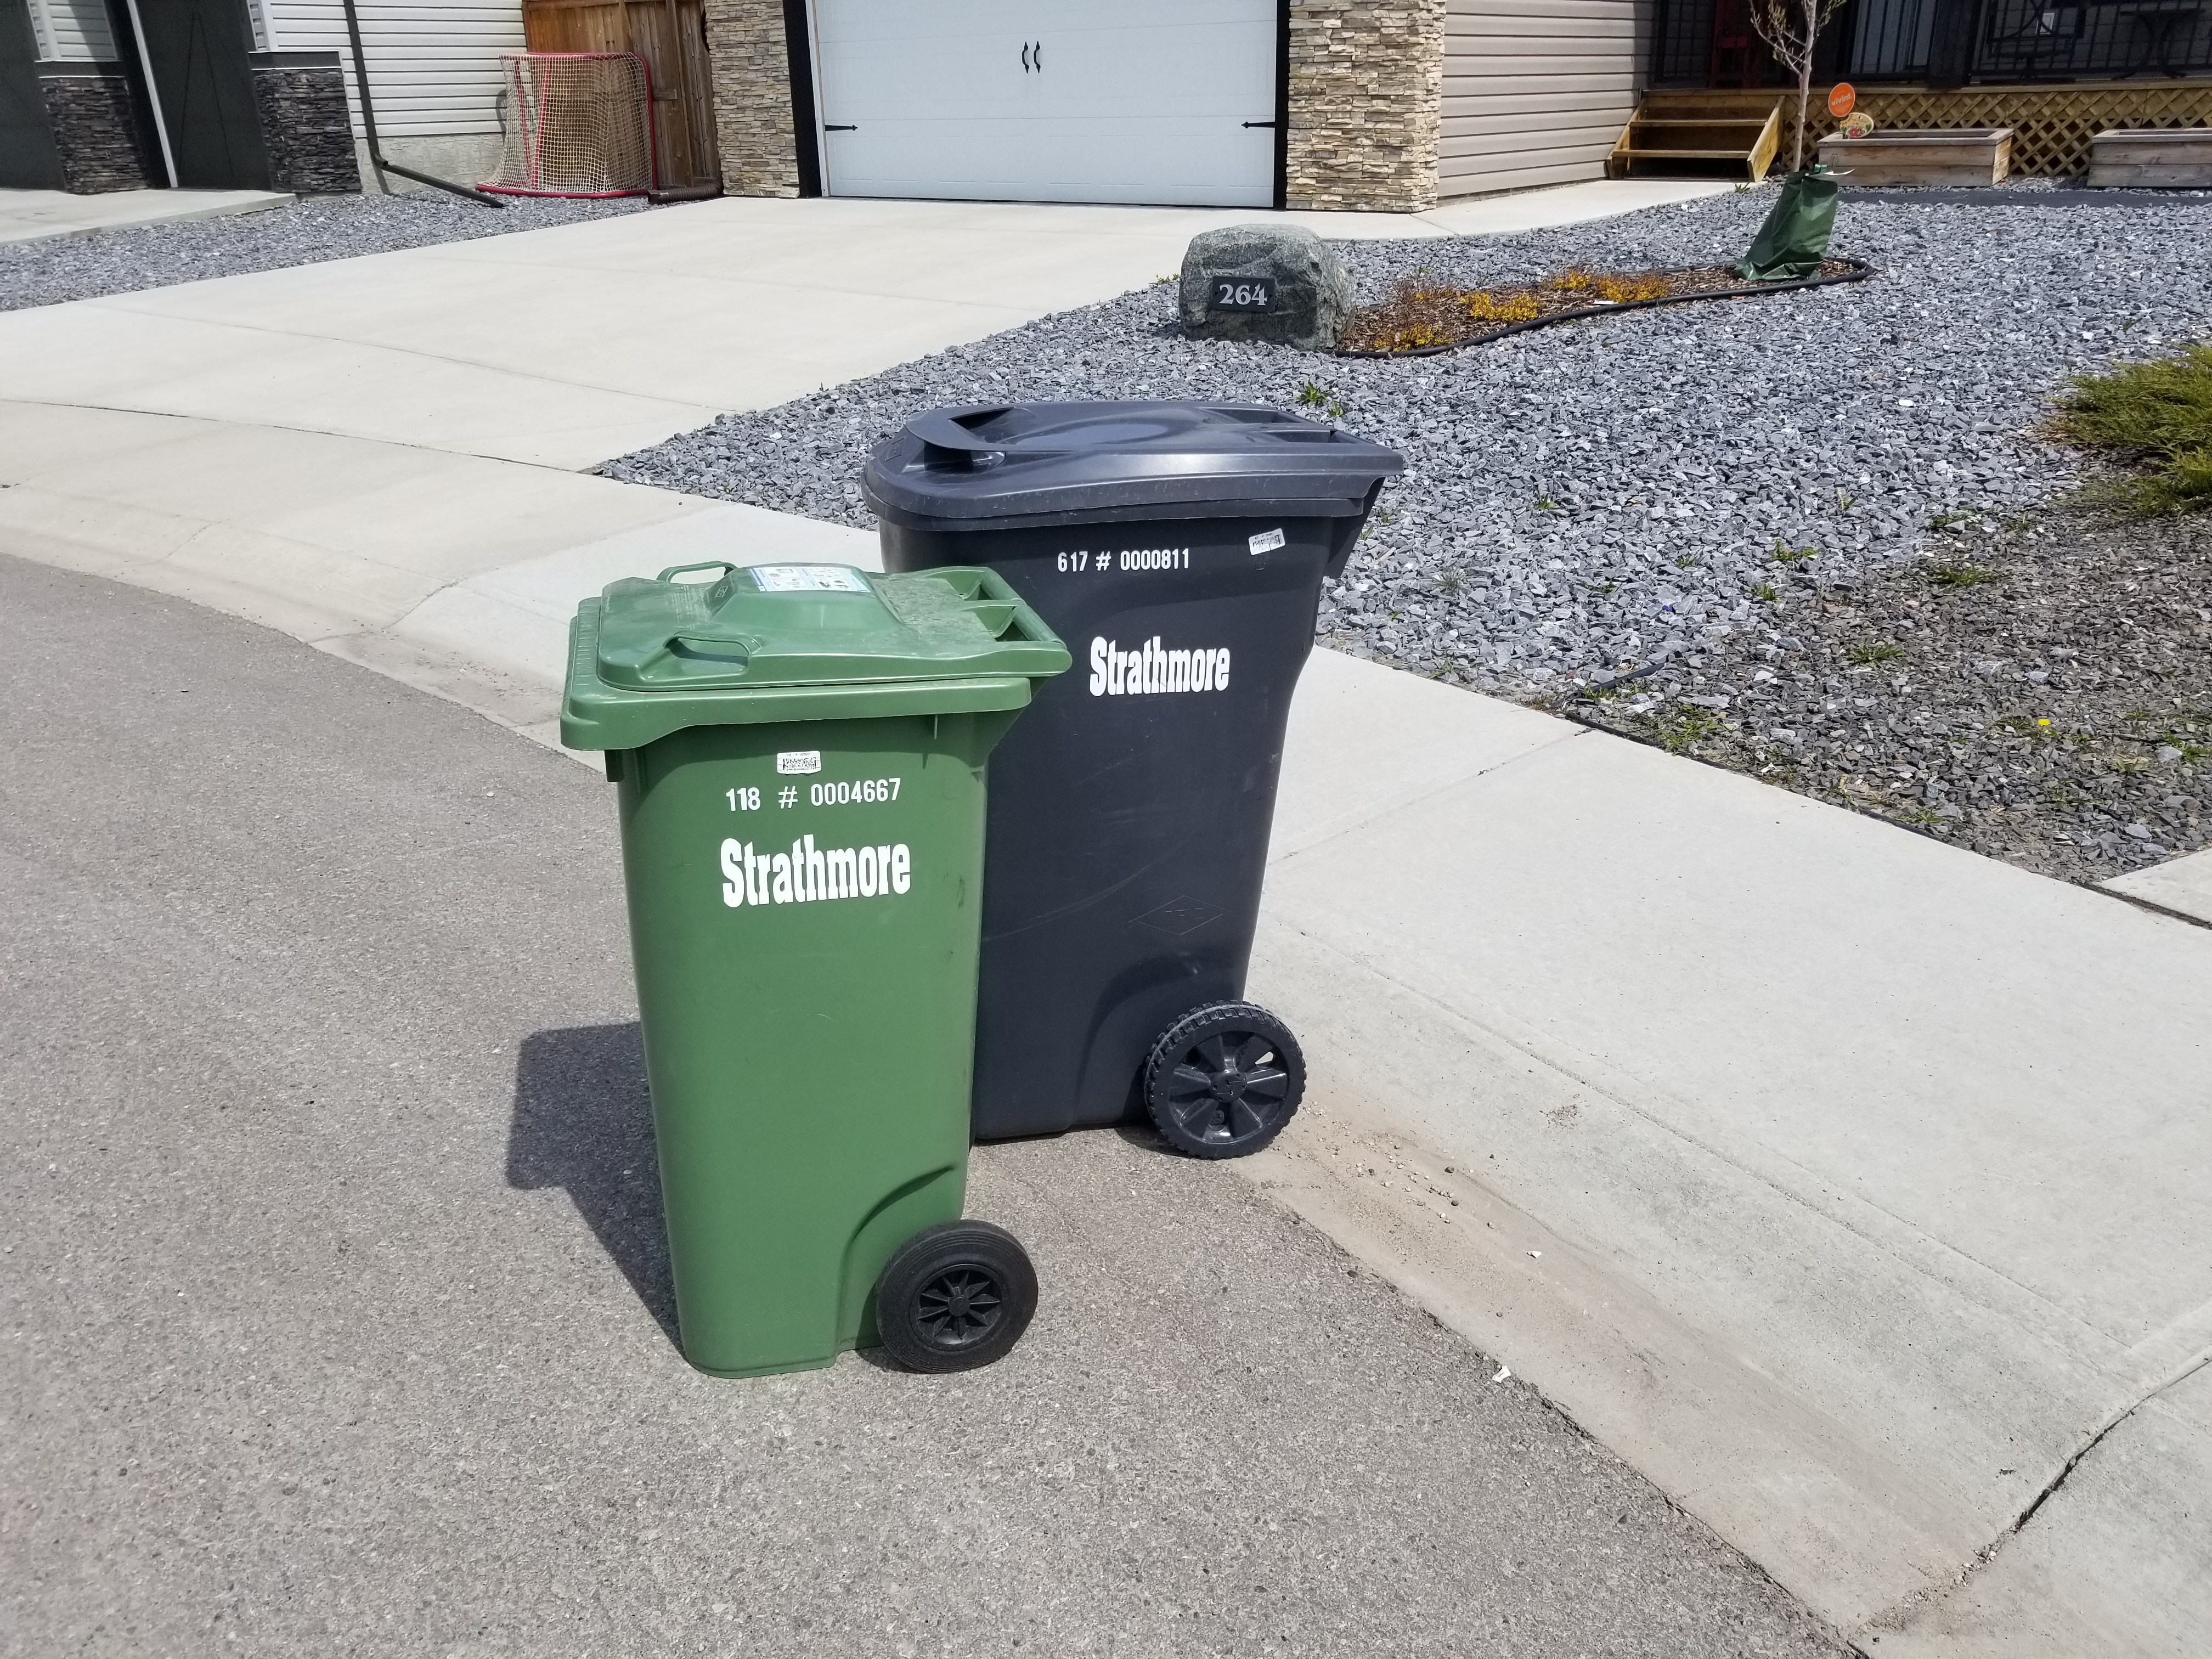 Strathmore Curbside Garbage and Composting Pickup – Strathmore